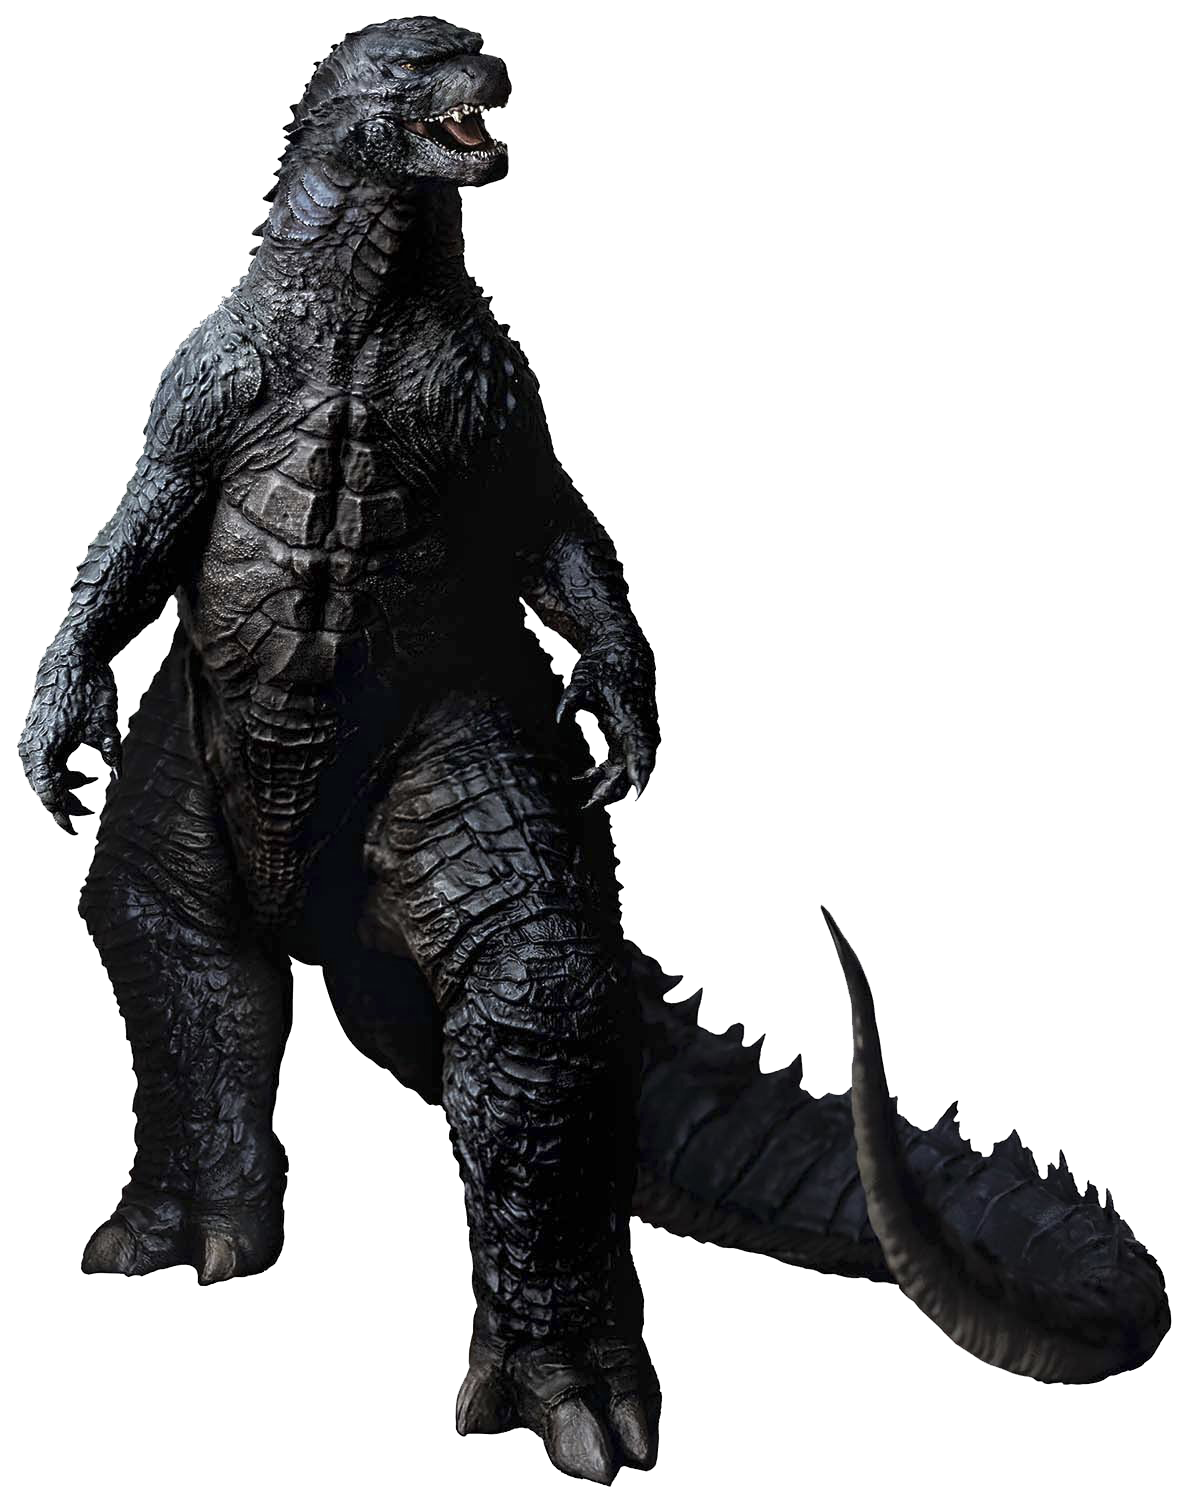 Godzilla png. One minute melee fanon